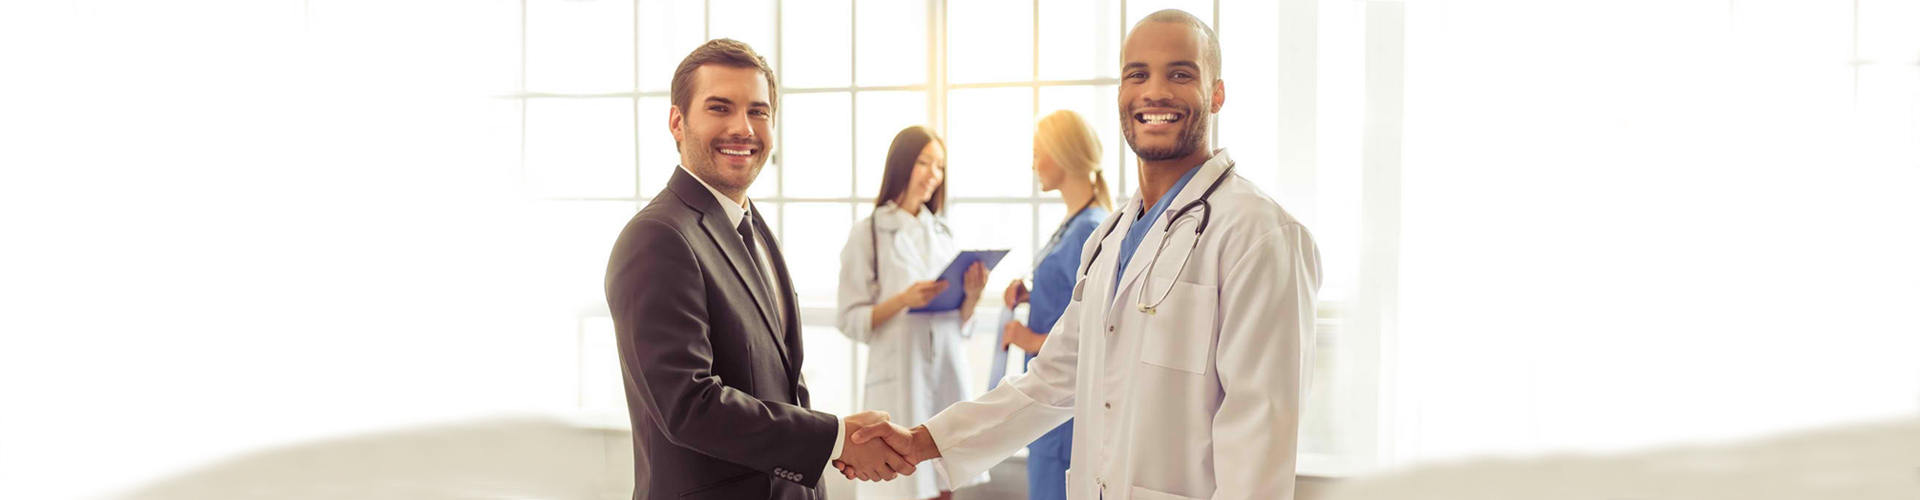 a businessman and a doctor shaking hands